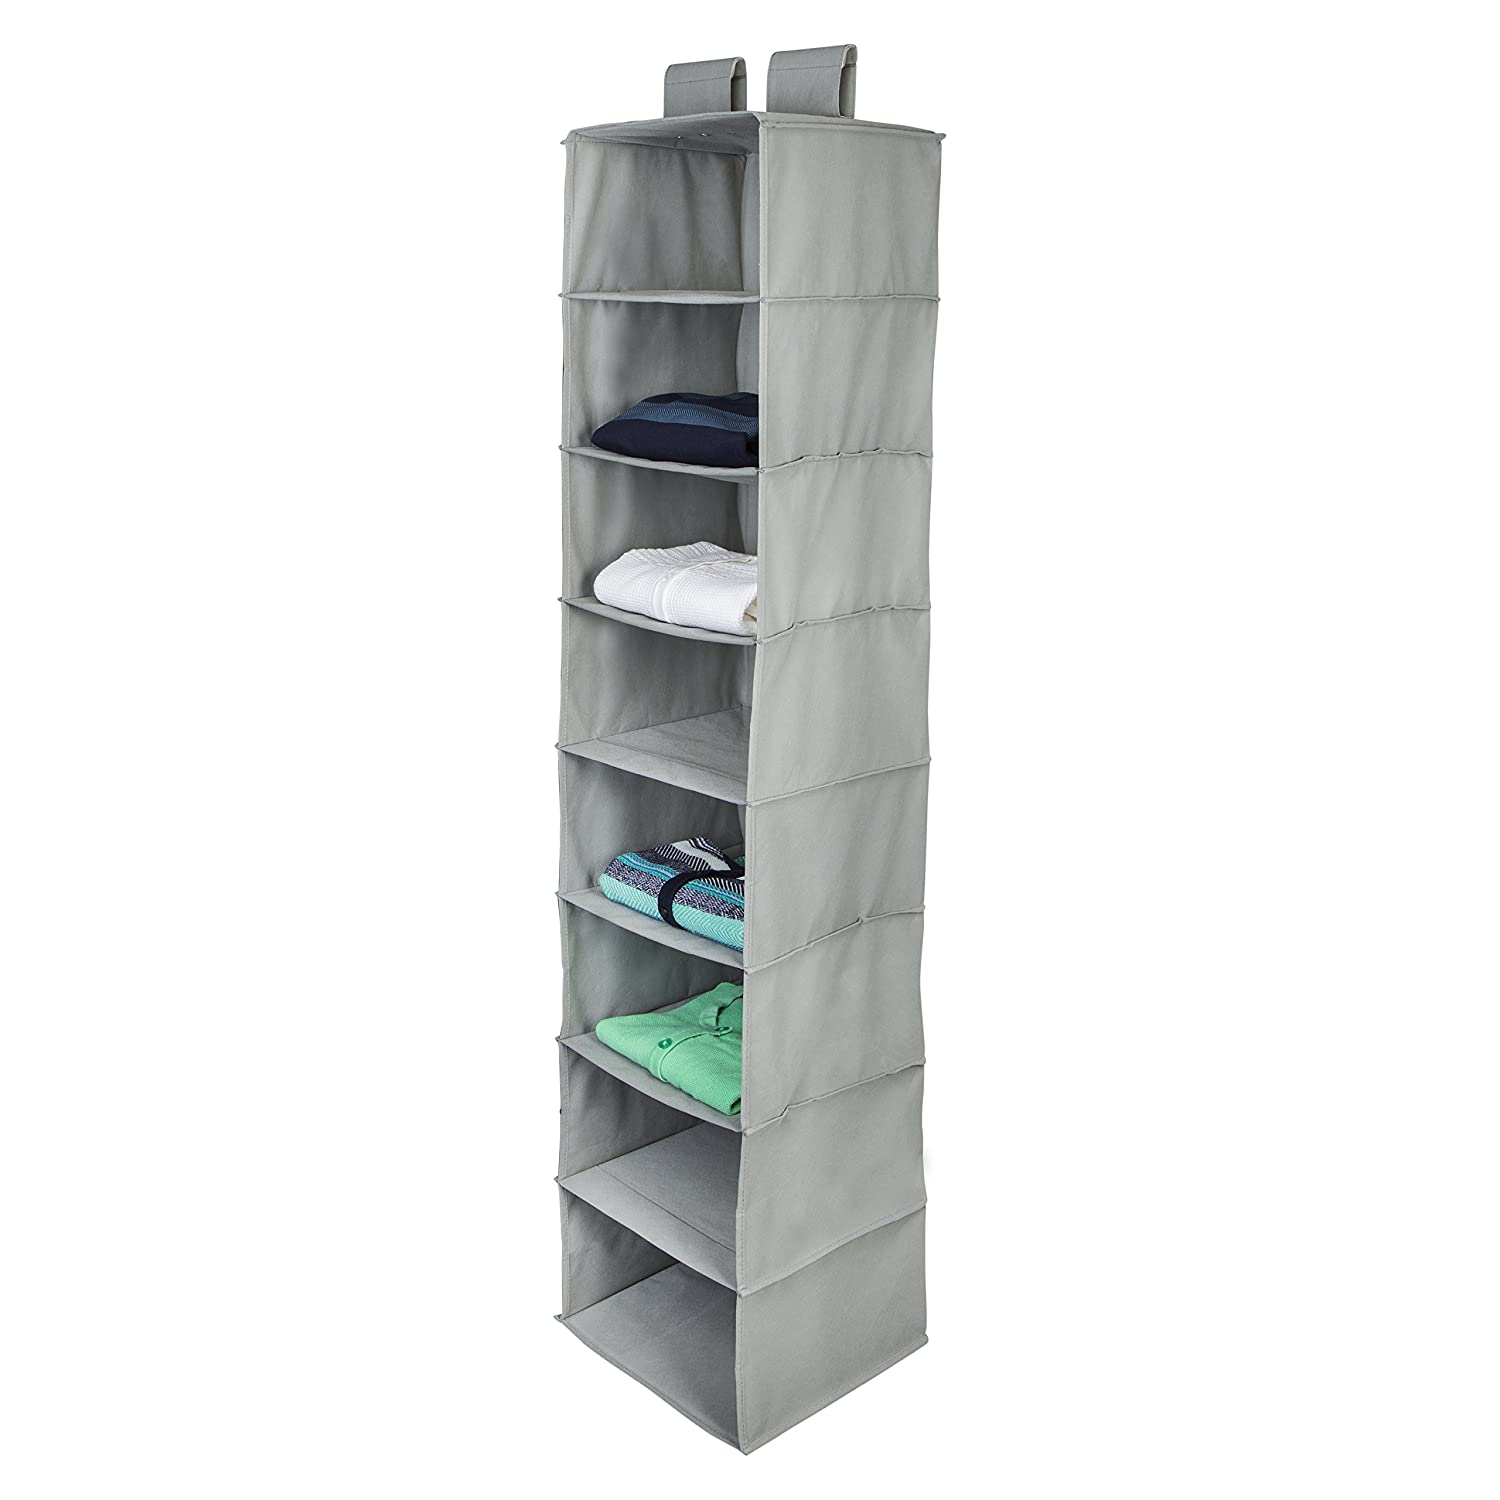 Honey-Can-Do SFT-01277 Drawers For Hanging Organizer SFT-01246